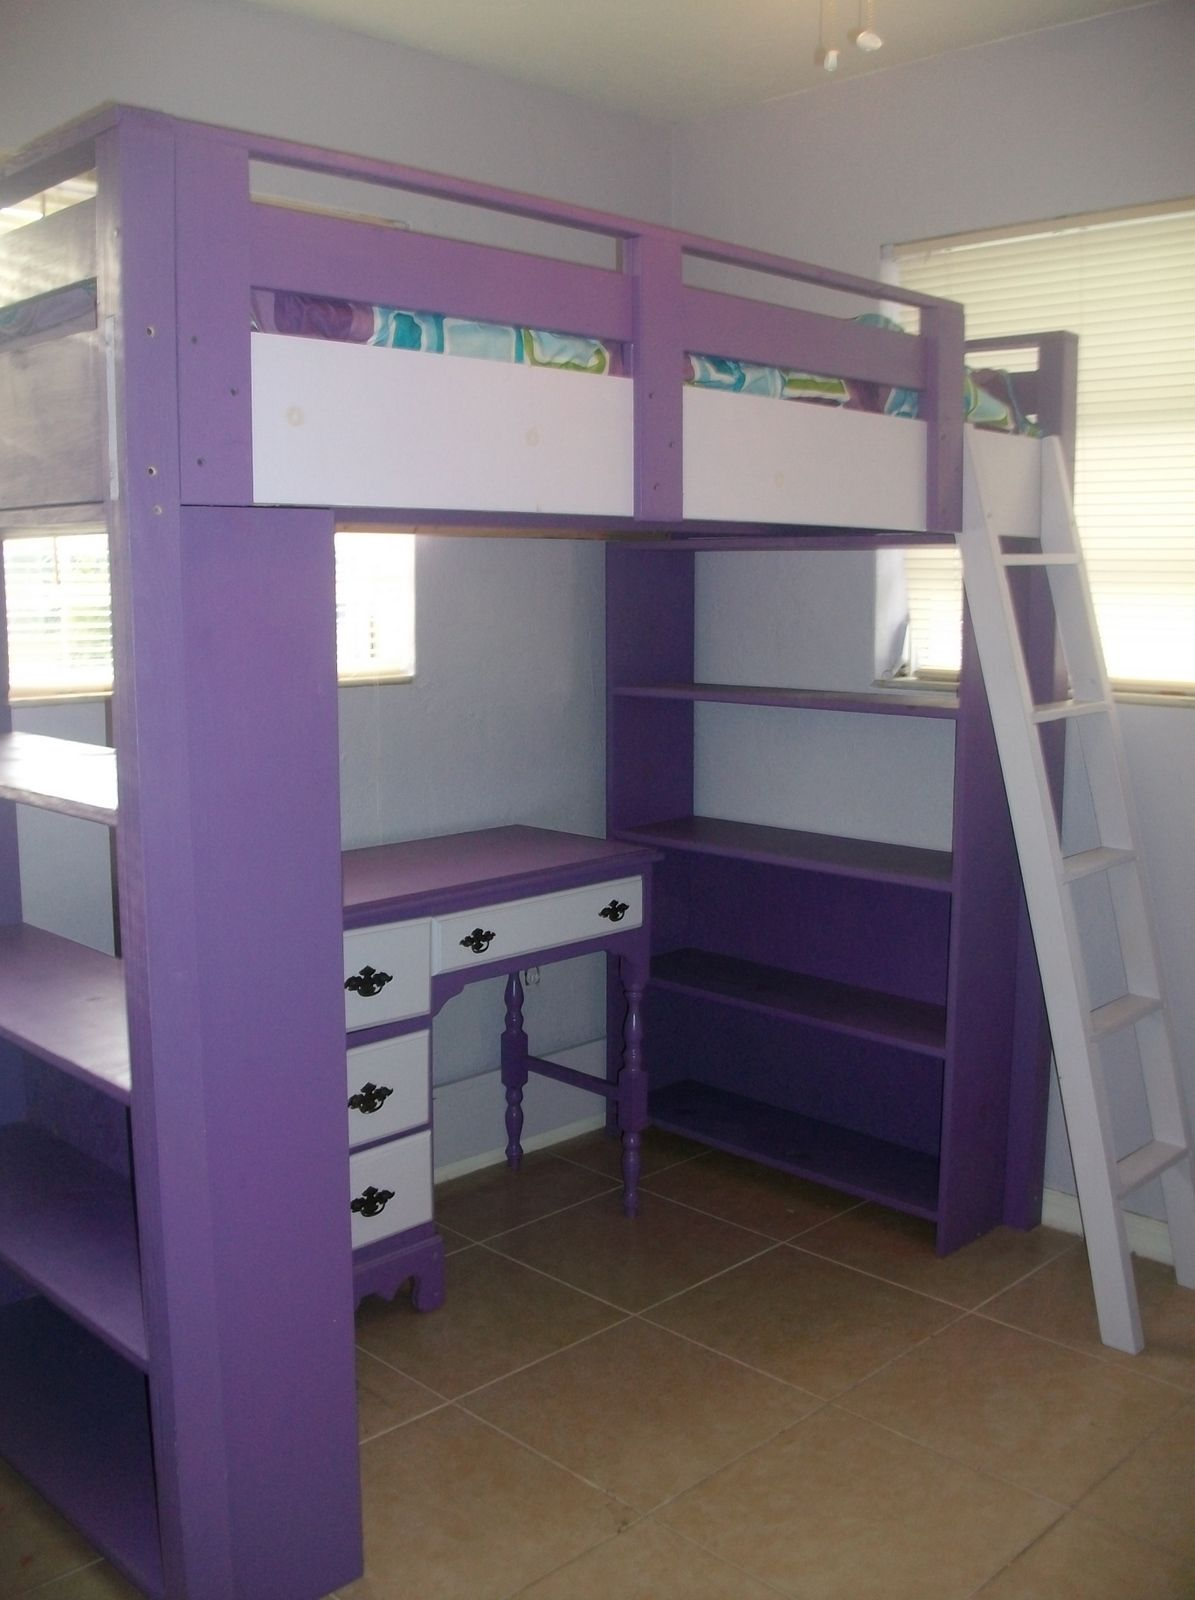 Diy loft bed plans with a desk under purple loft bed for Loft drawings